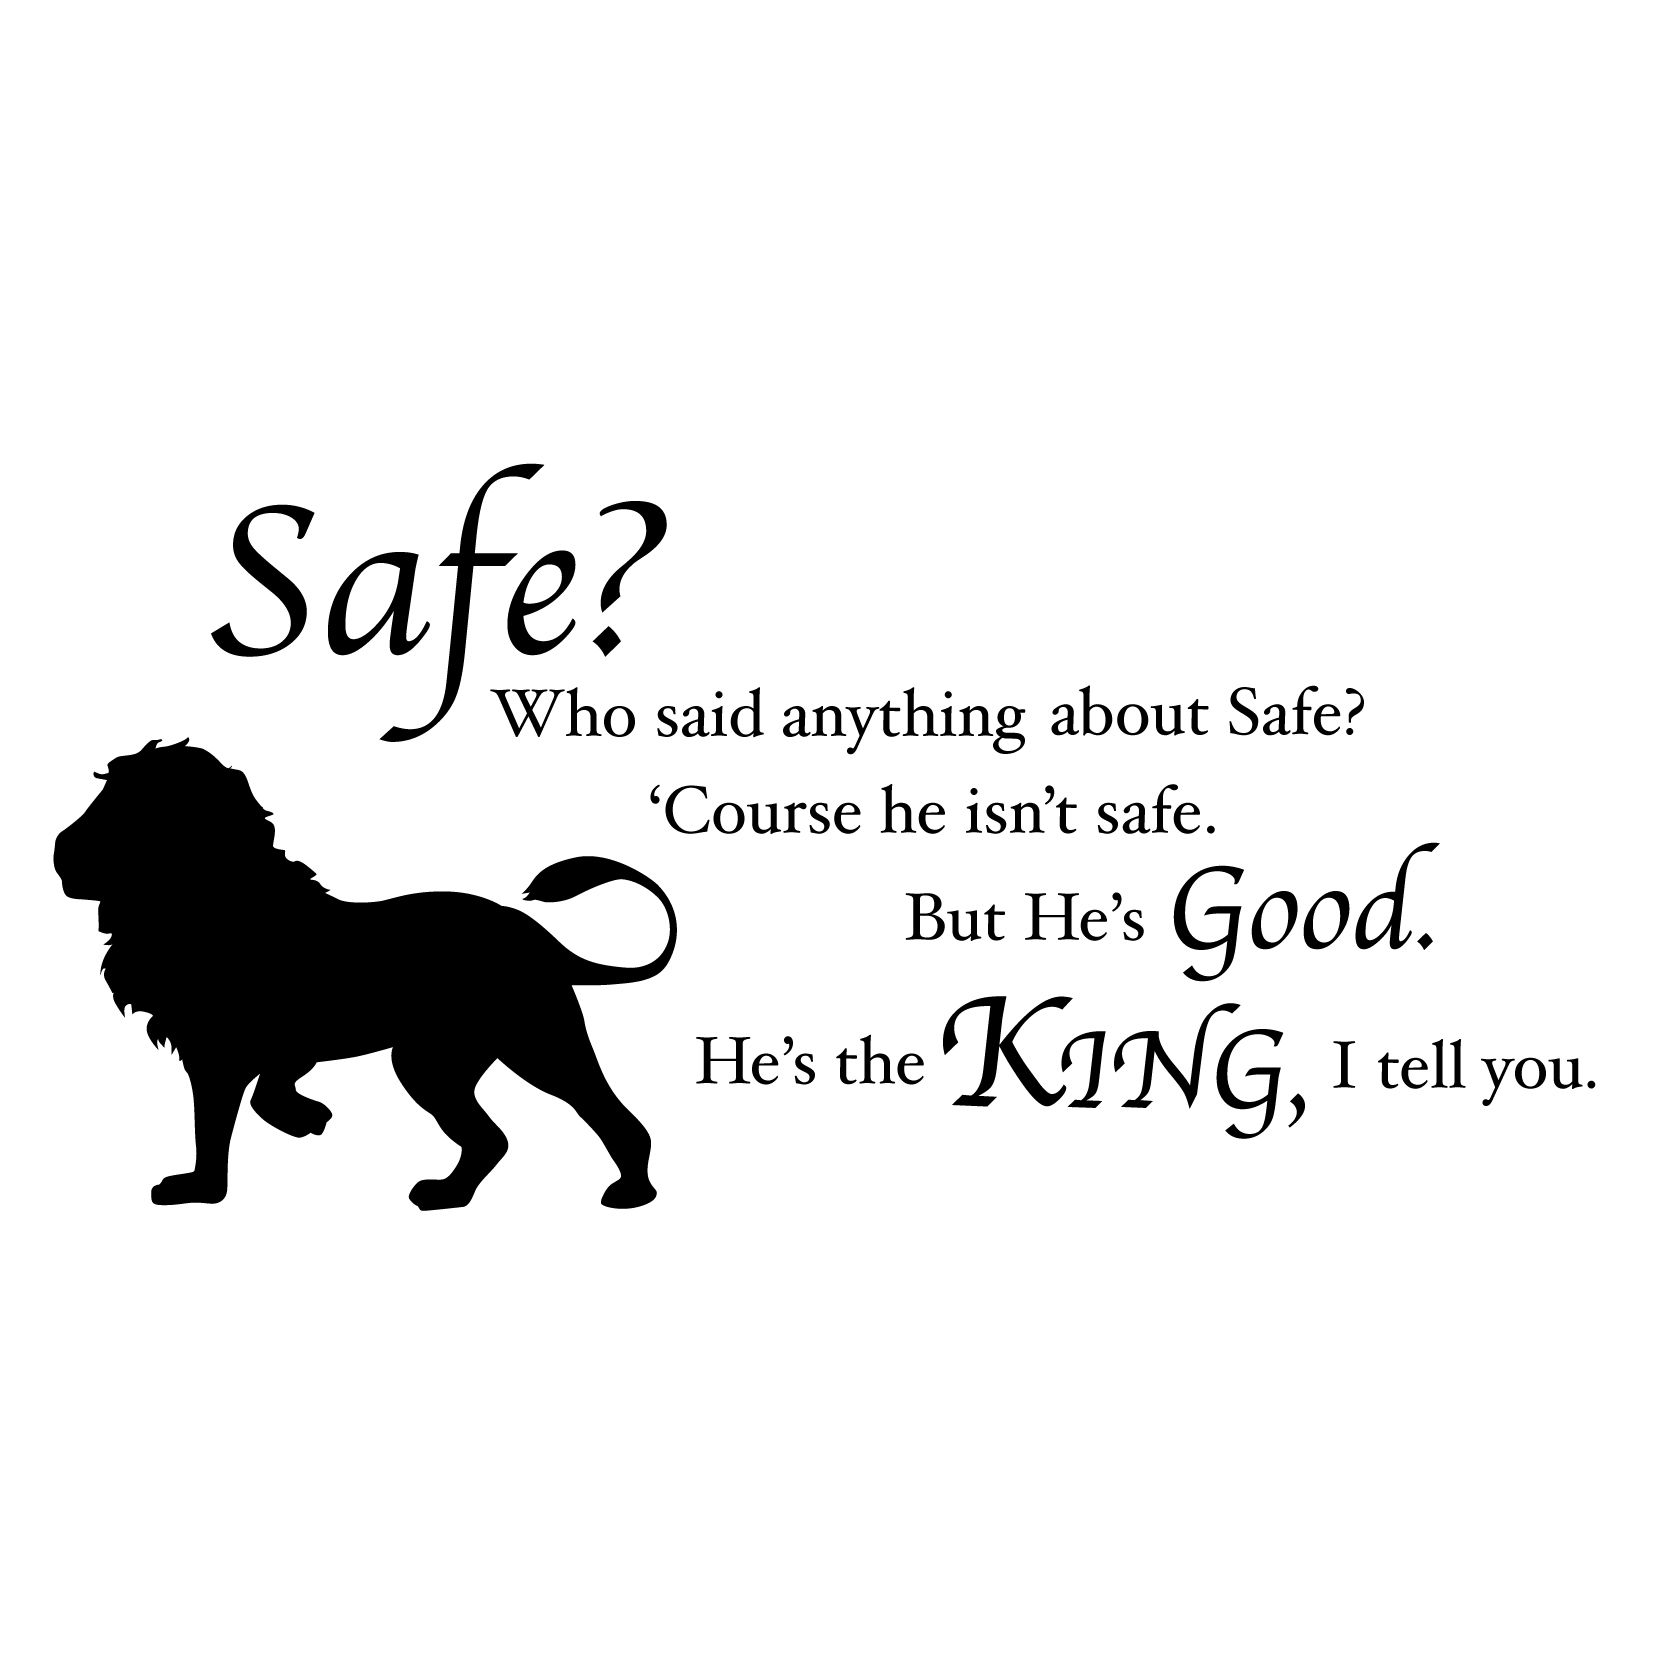 Chronicles of Narnia Aslan Safe Quote   Vinyls, Chronicles of ...